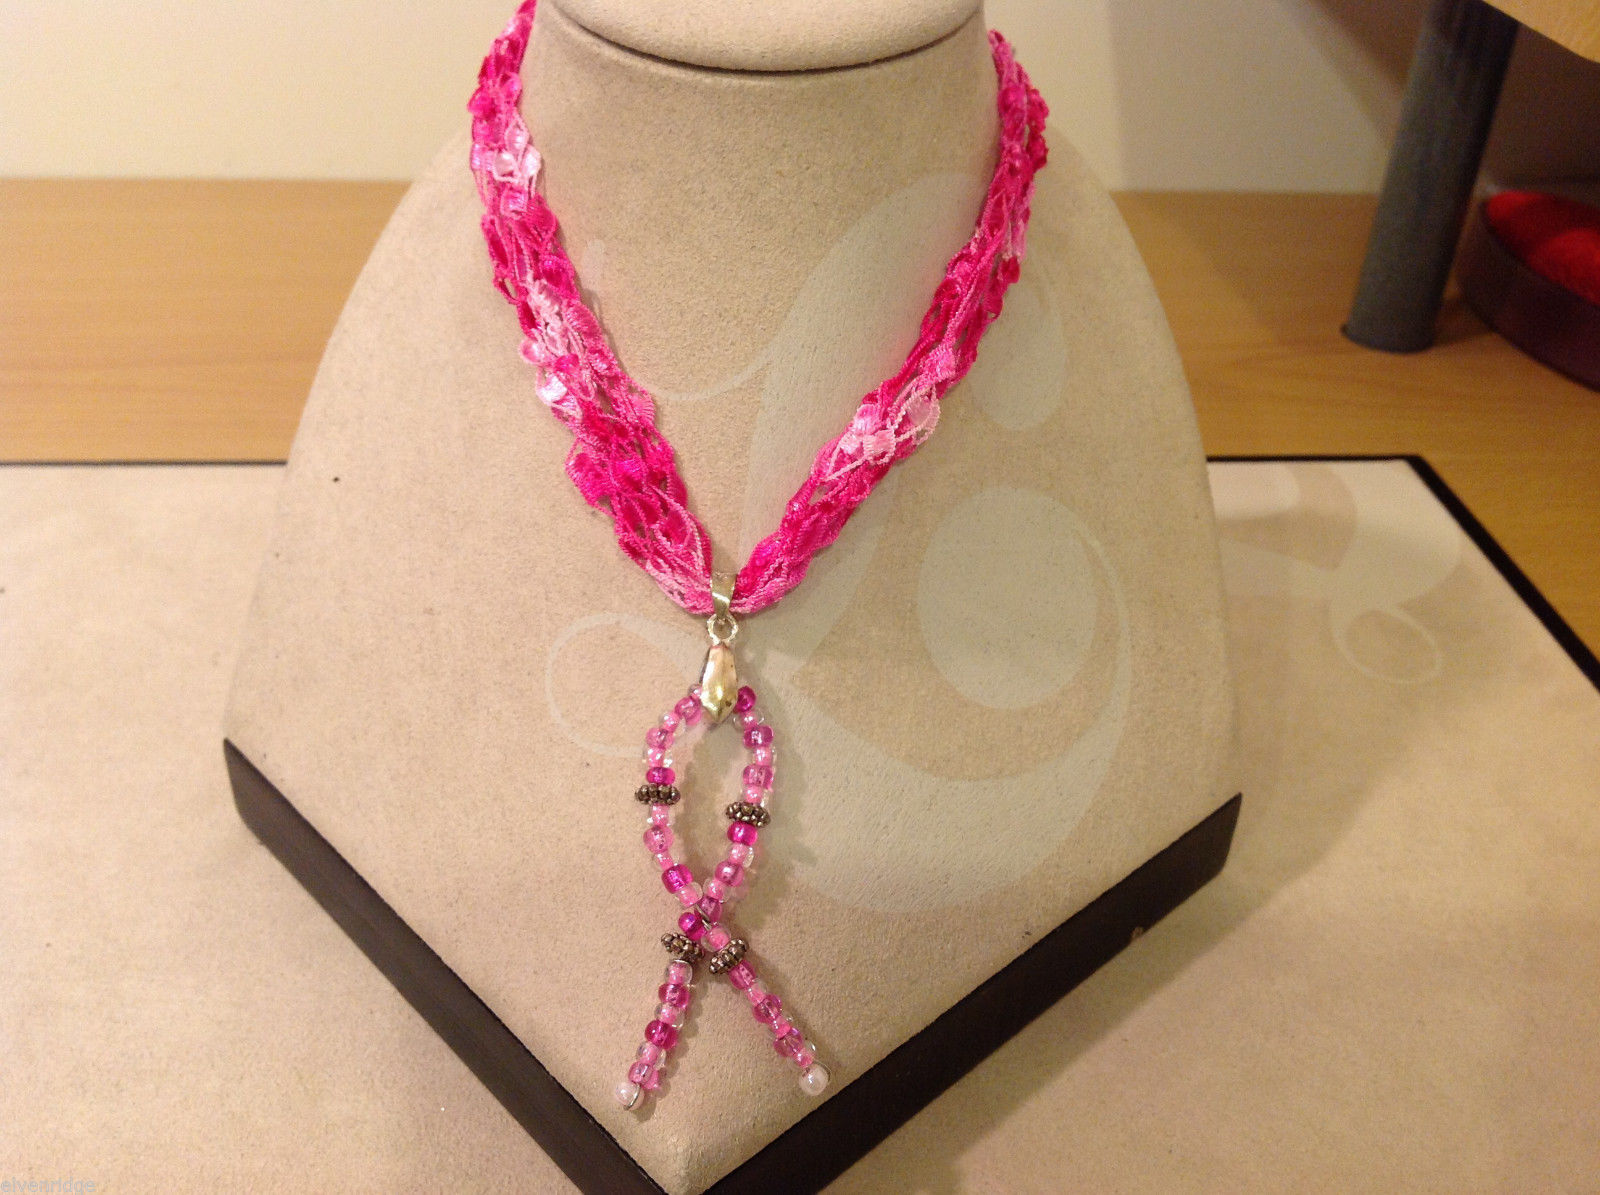 Handmade Pink Beads Breast Cancer pendant on fabric pink thread cord necklace